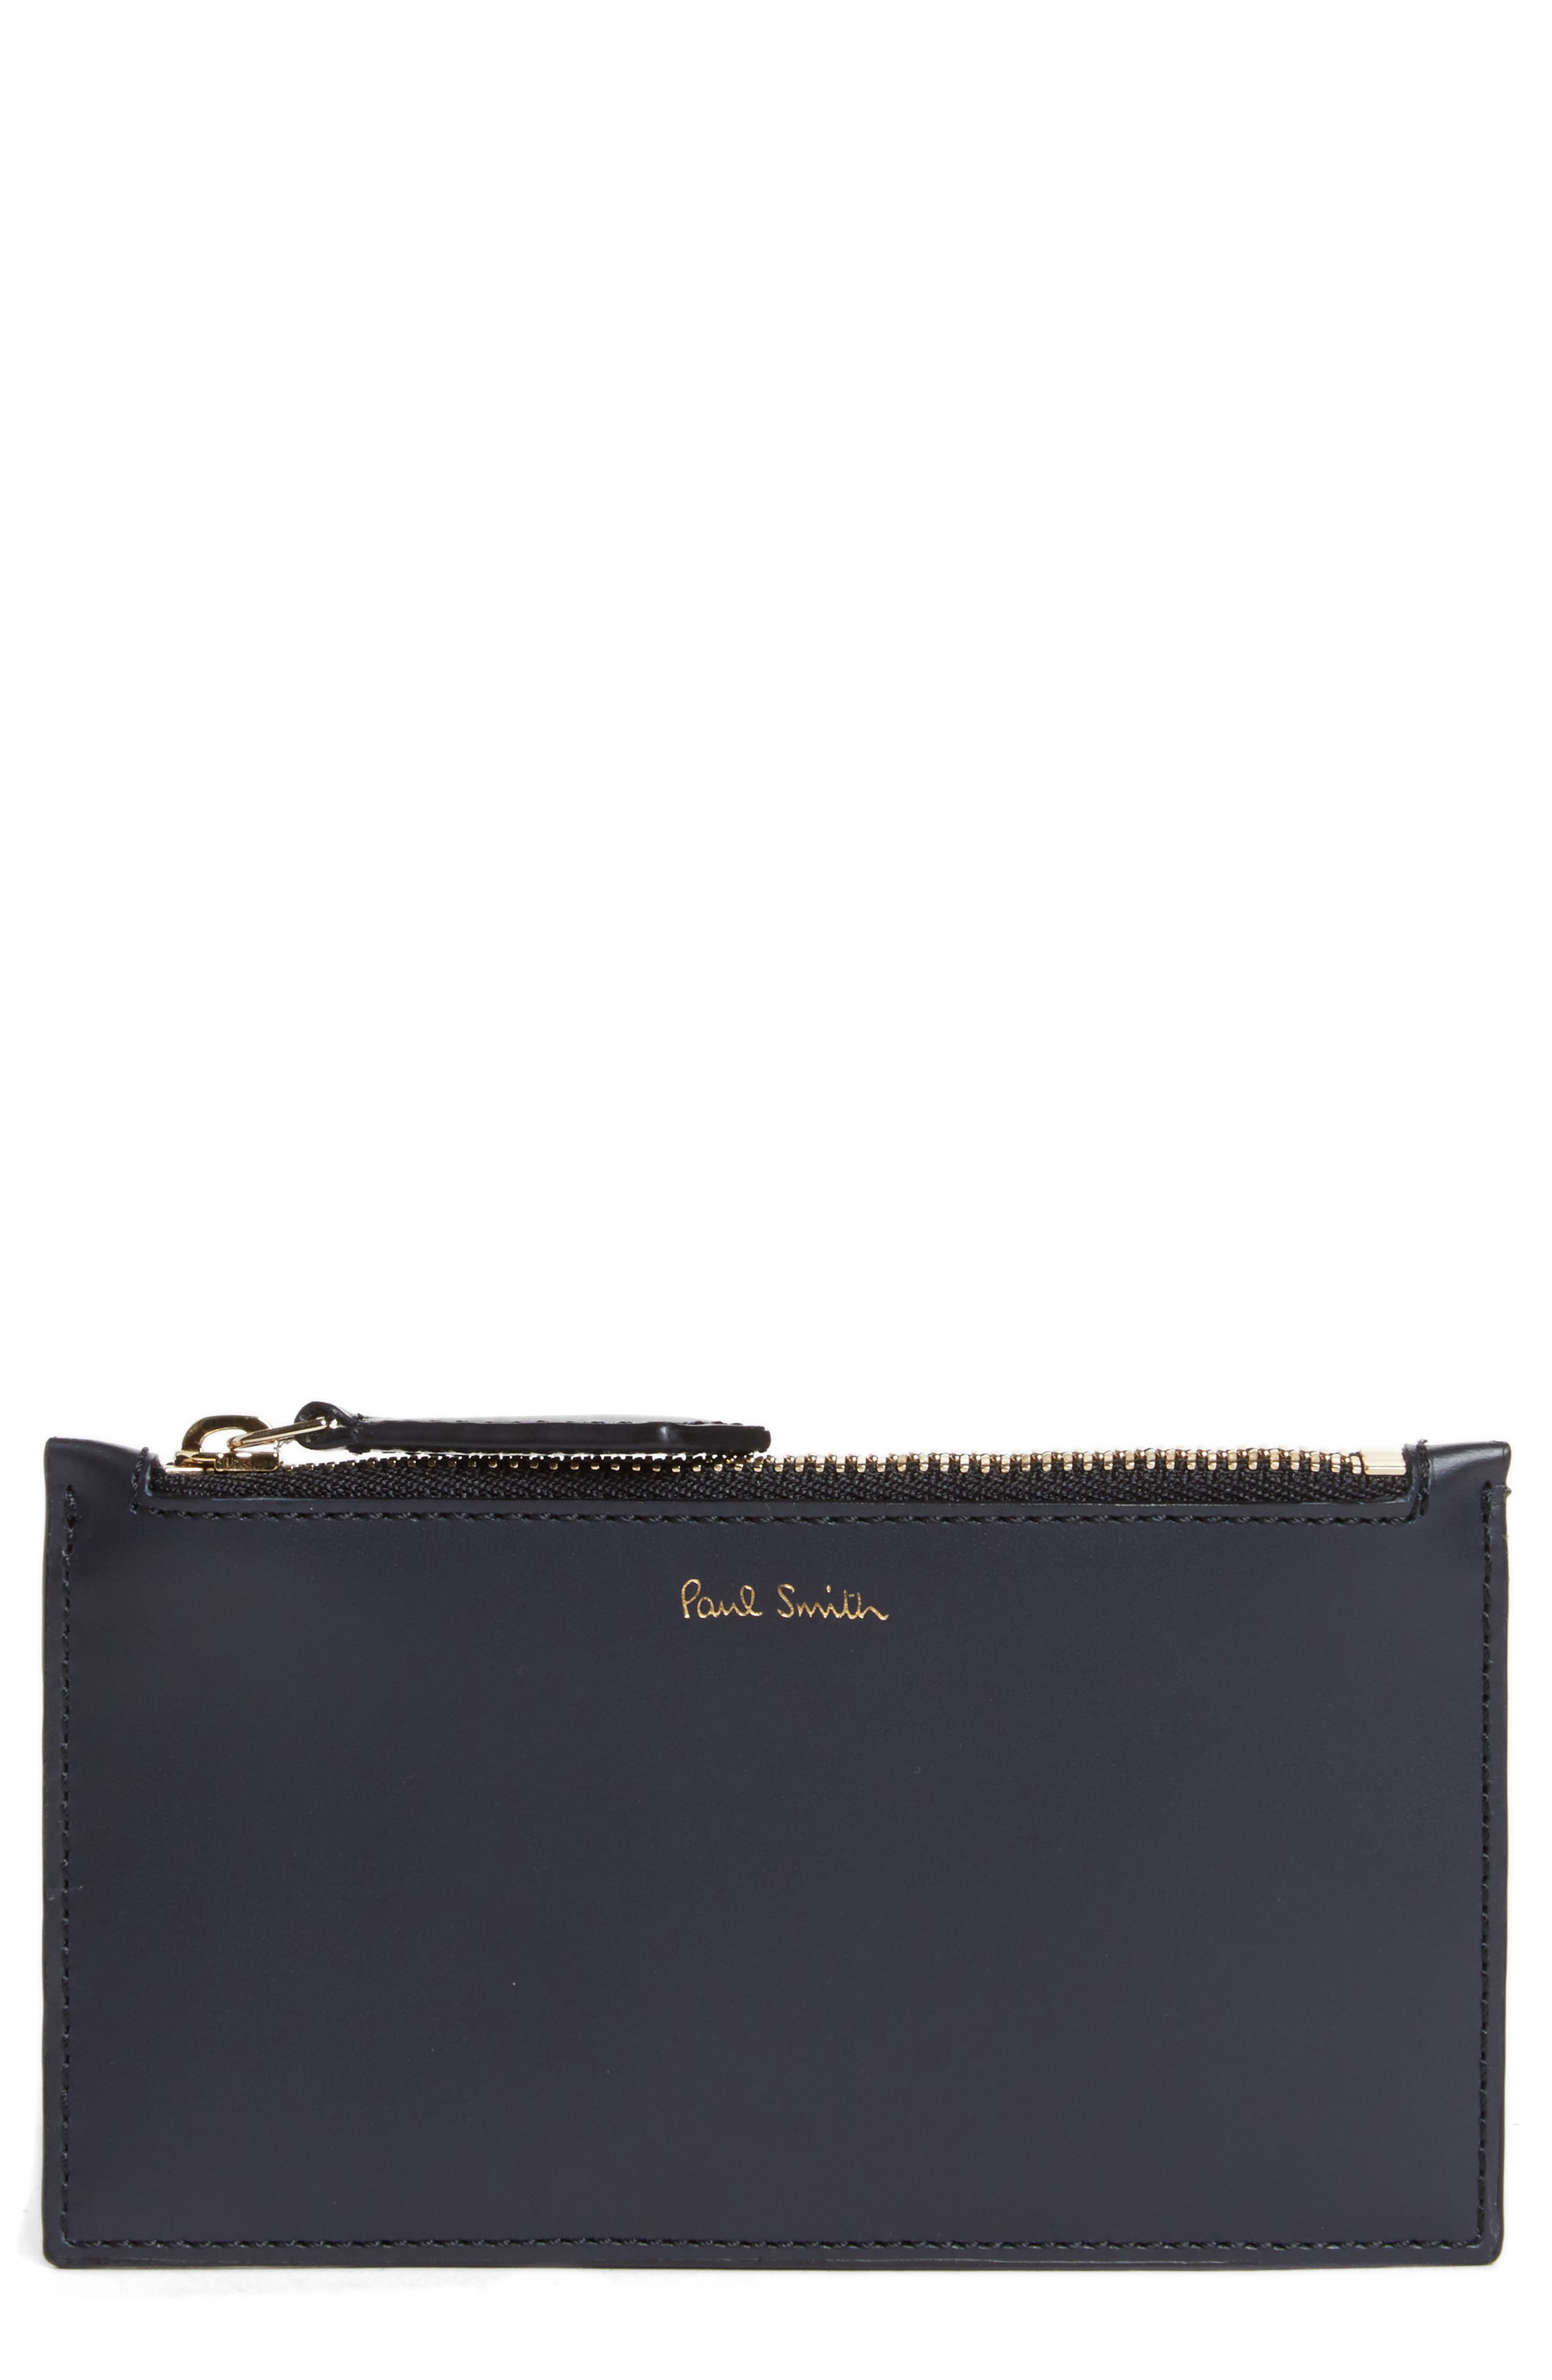 Paul Smith Color Band Leather Zip Pouch